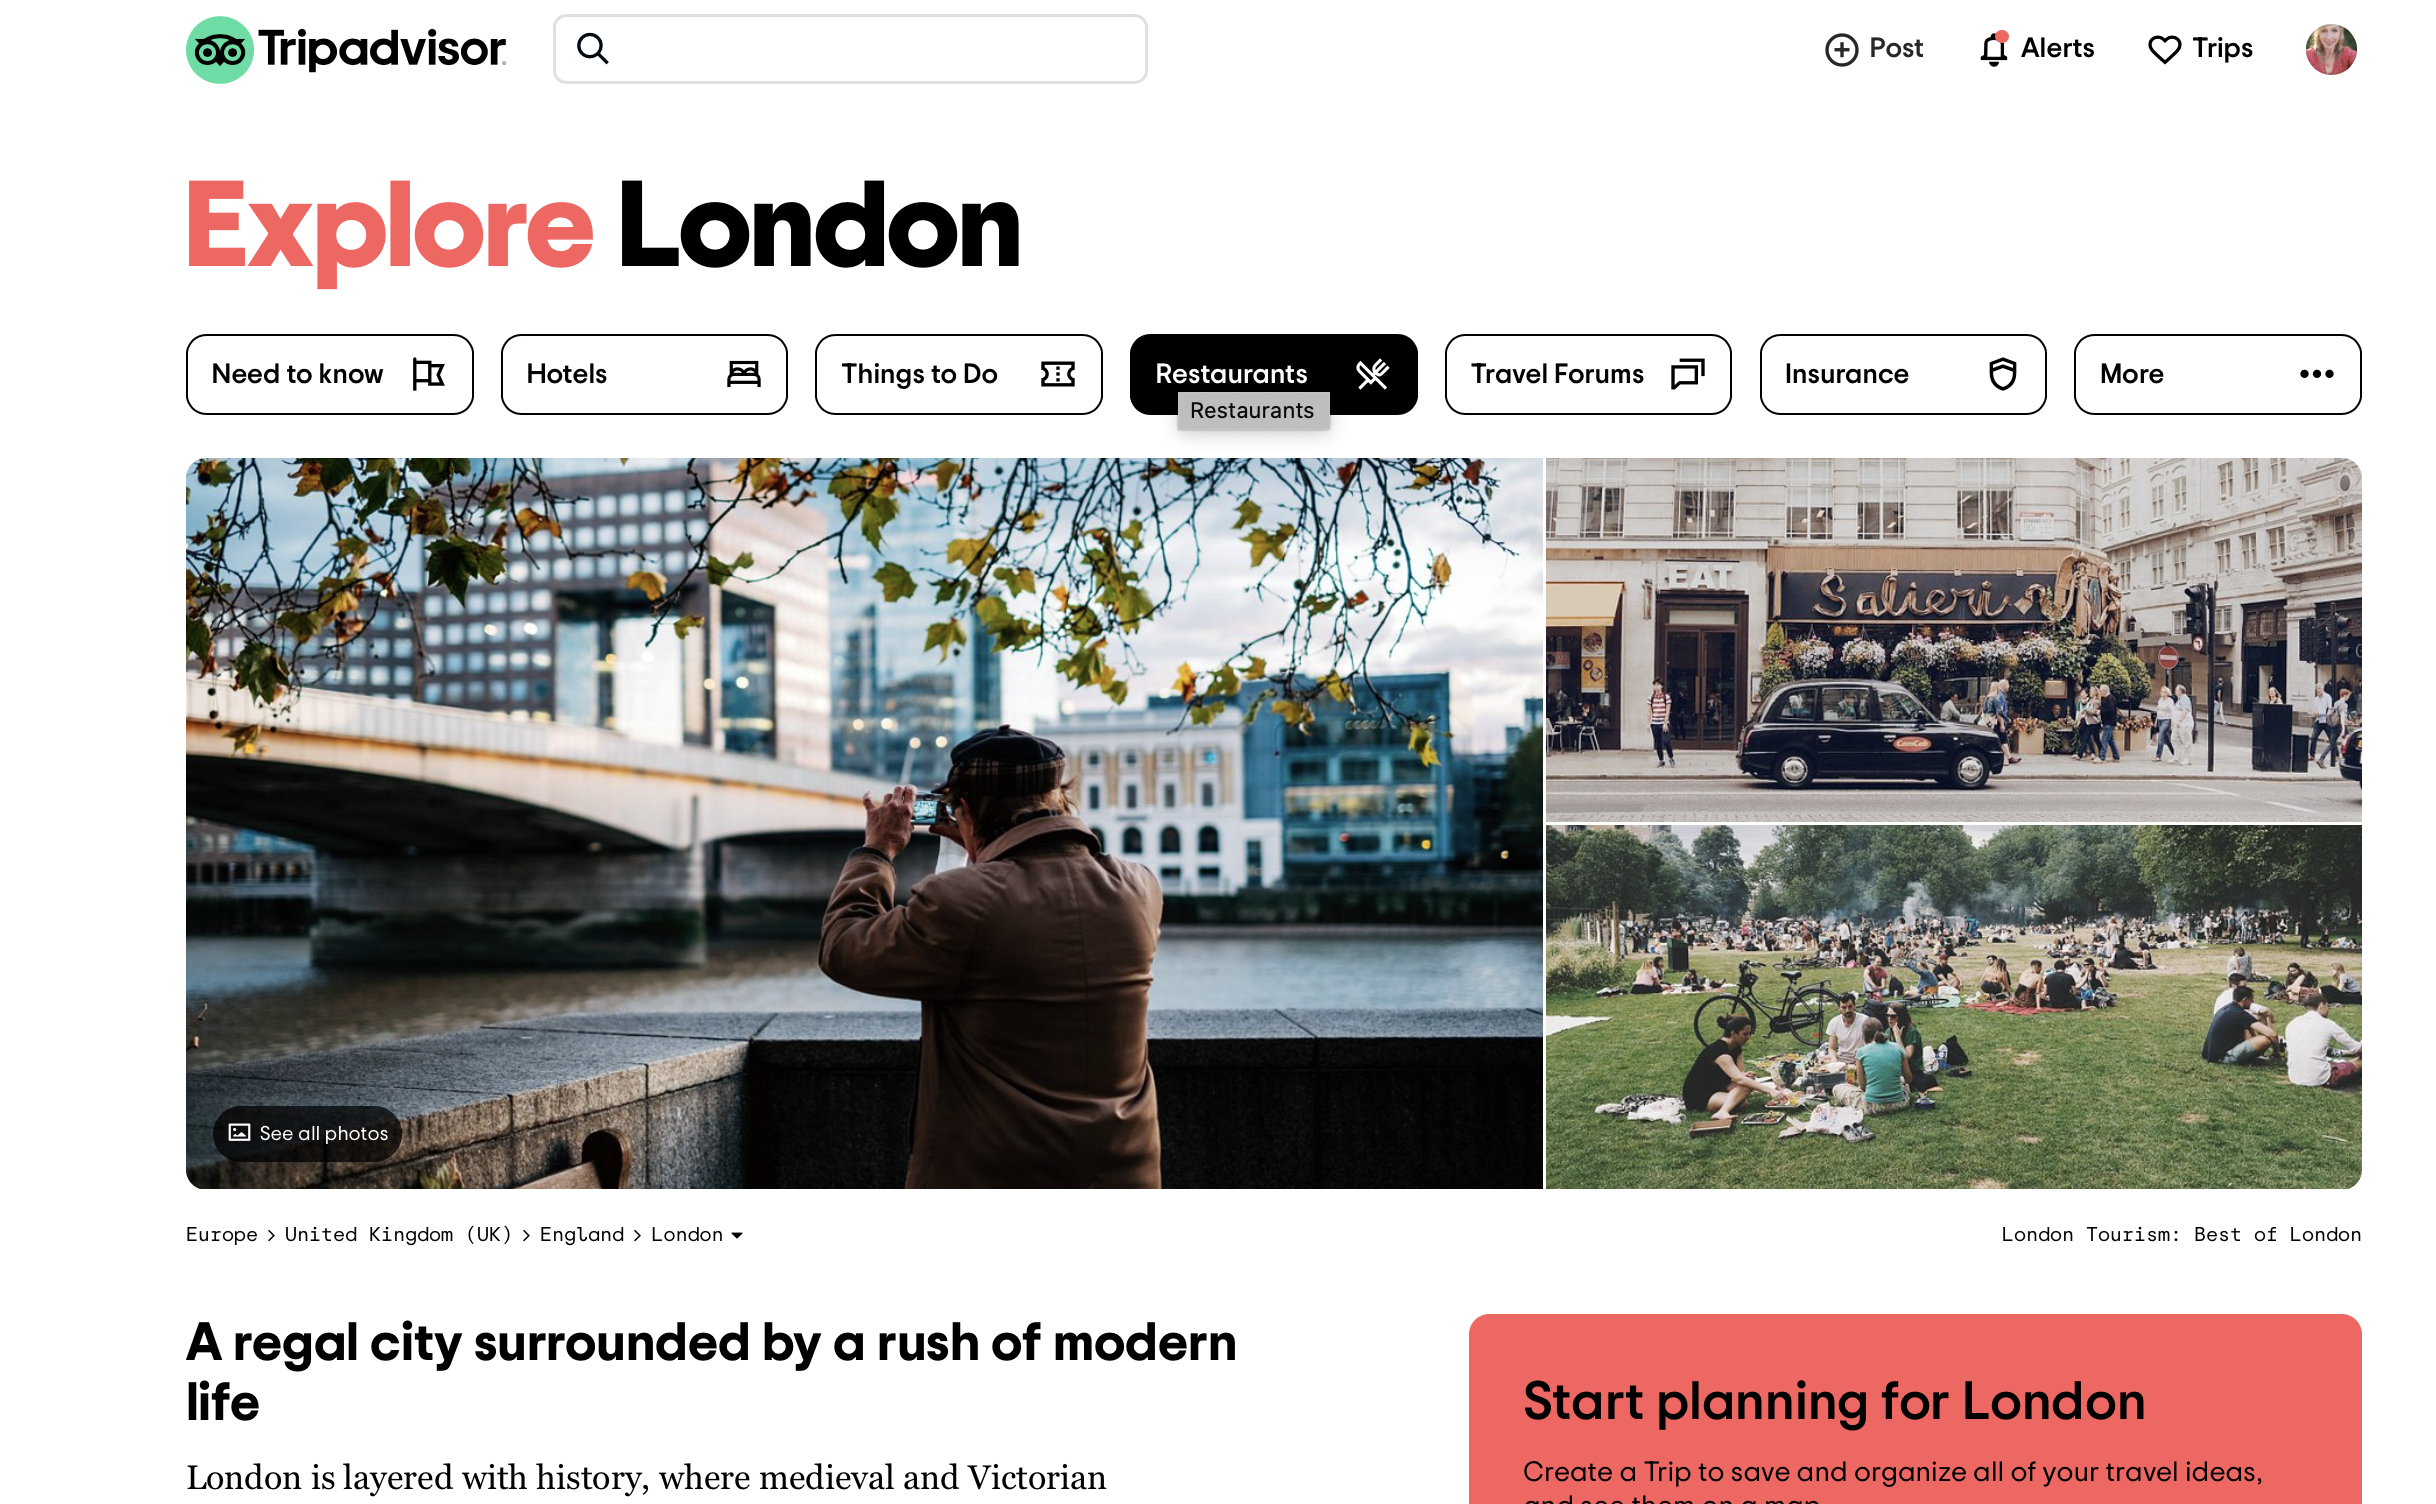 Curated content for in-destination travel guides at TripAdvisor